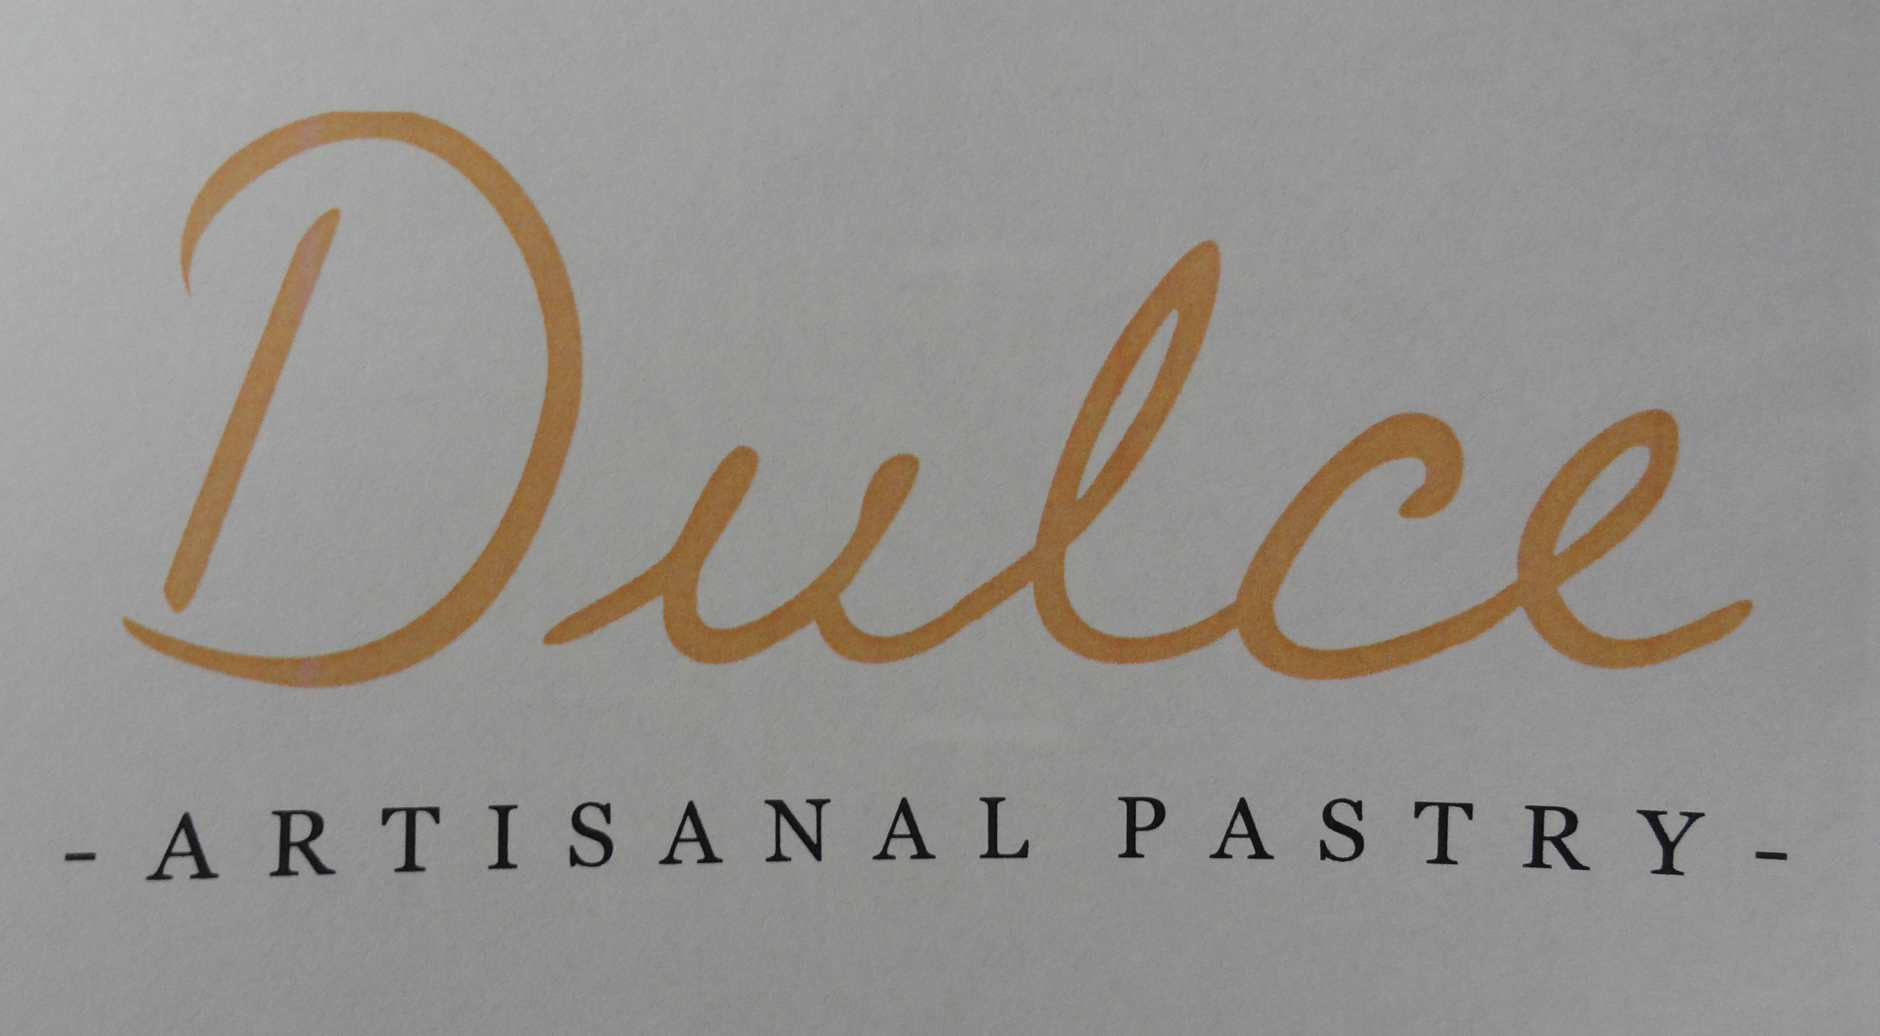 Signage for Dulce Artisanal Pastry. Credit: Josue Santiago Negron.